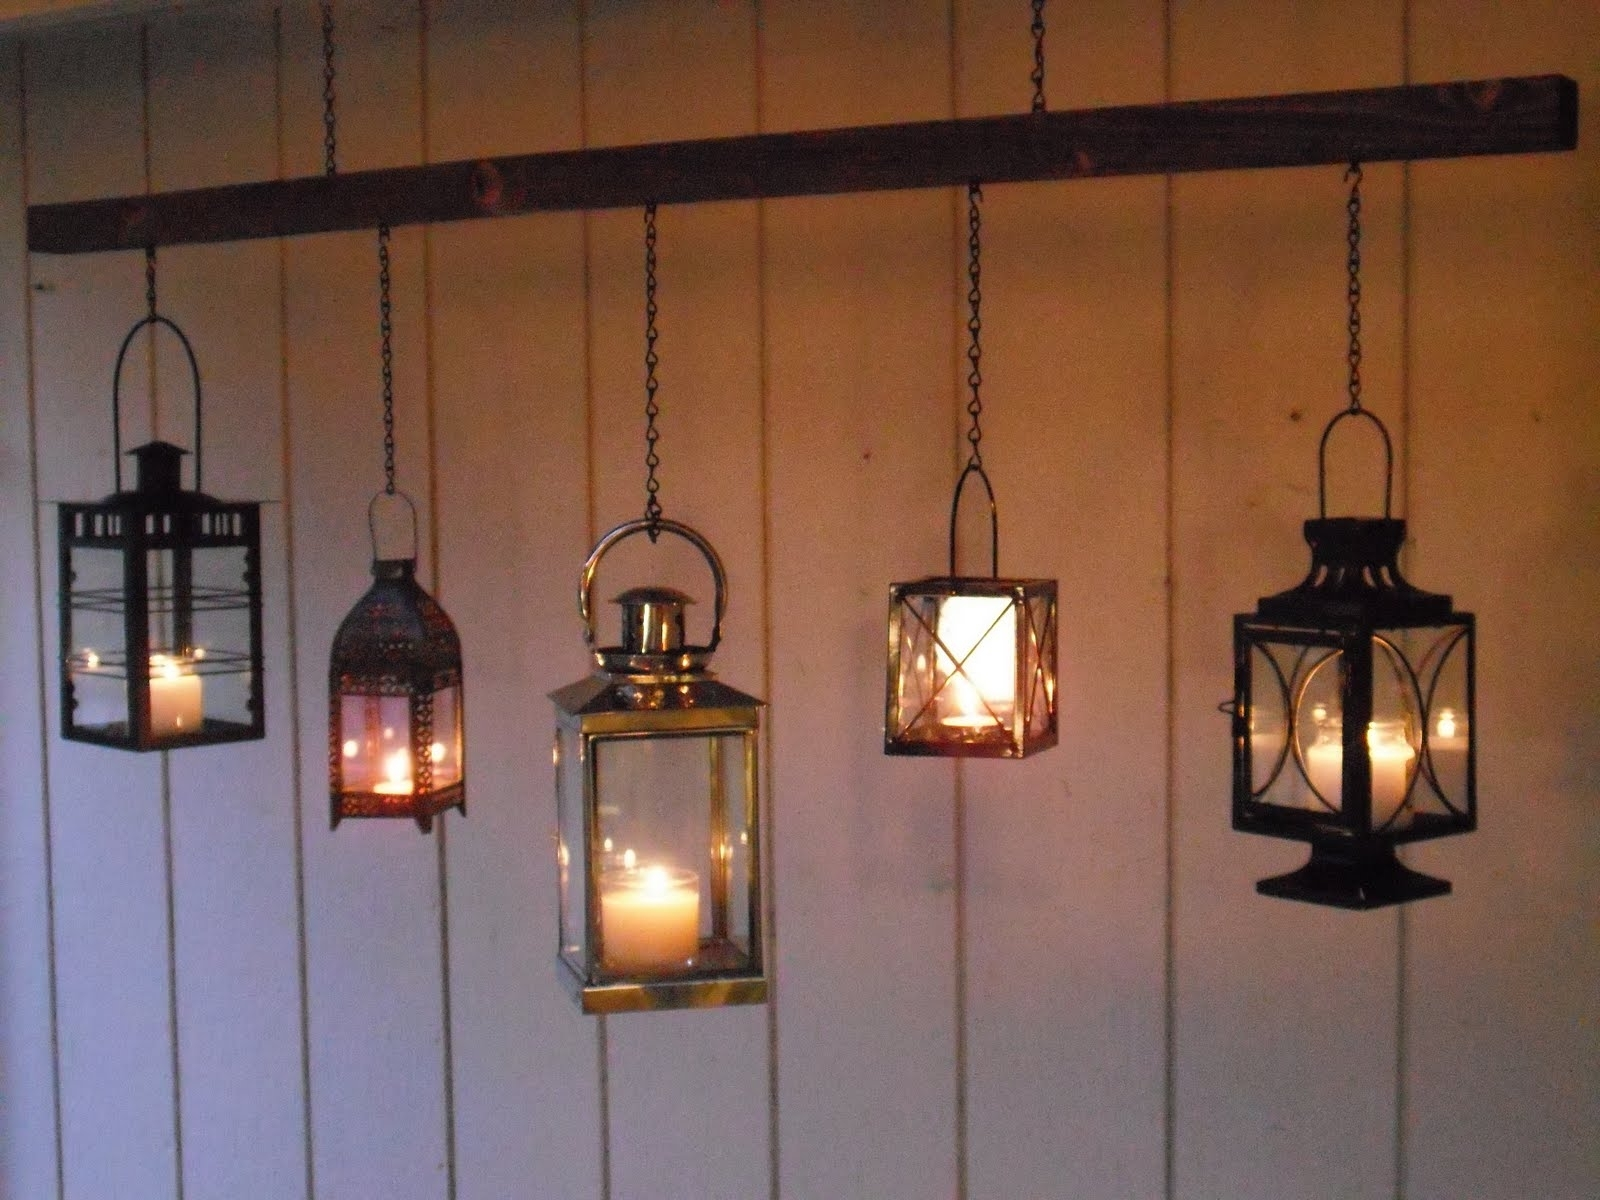 Newest Wedding Decoration Hanging Candle Lanterns – Matt And Jentry Home Design Inside Outdoor Hanging Lanterns Candles (Gallery 14 of 20)